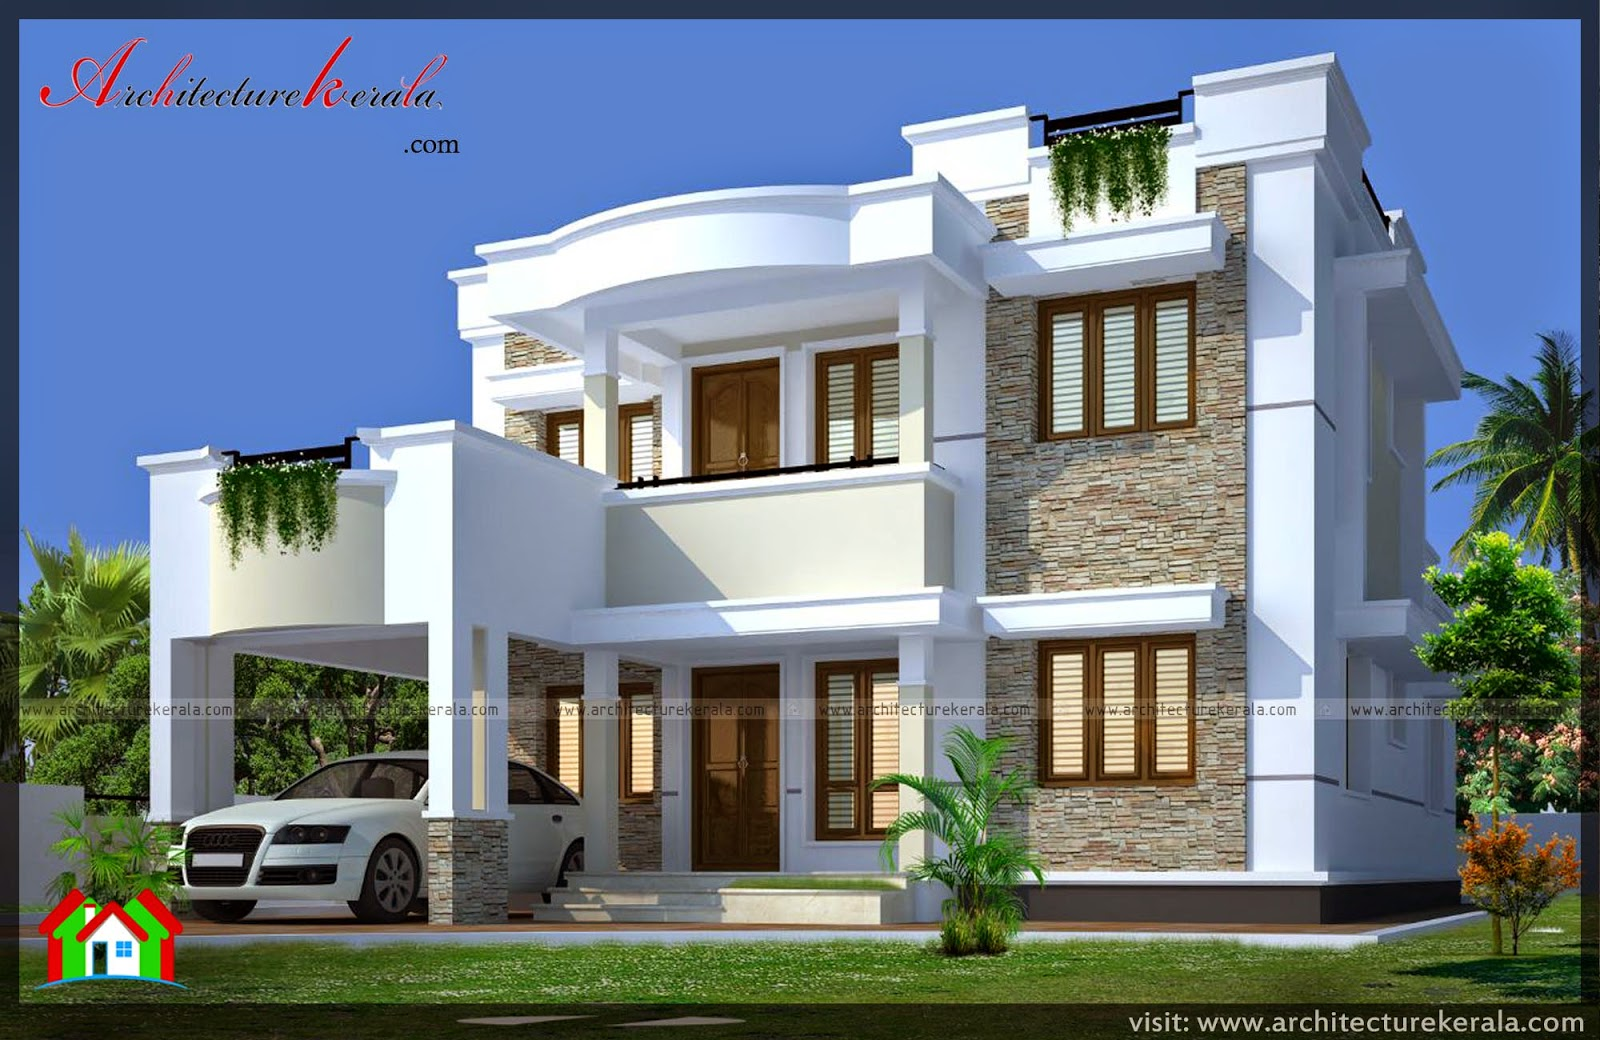 Contemporary elevation and house plan architecture kerala for House elevation